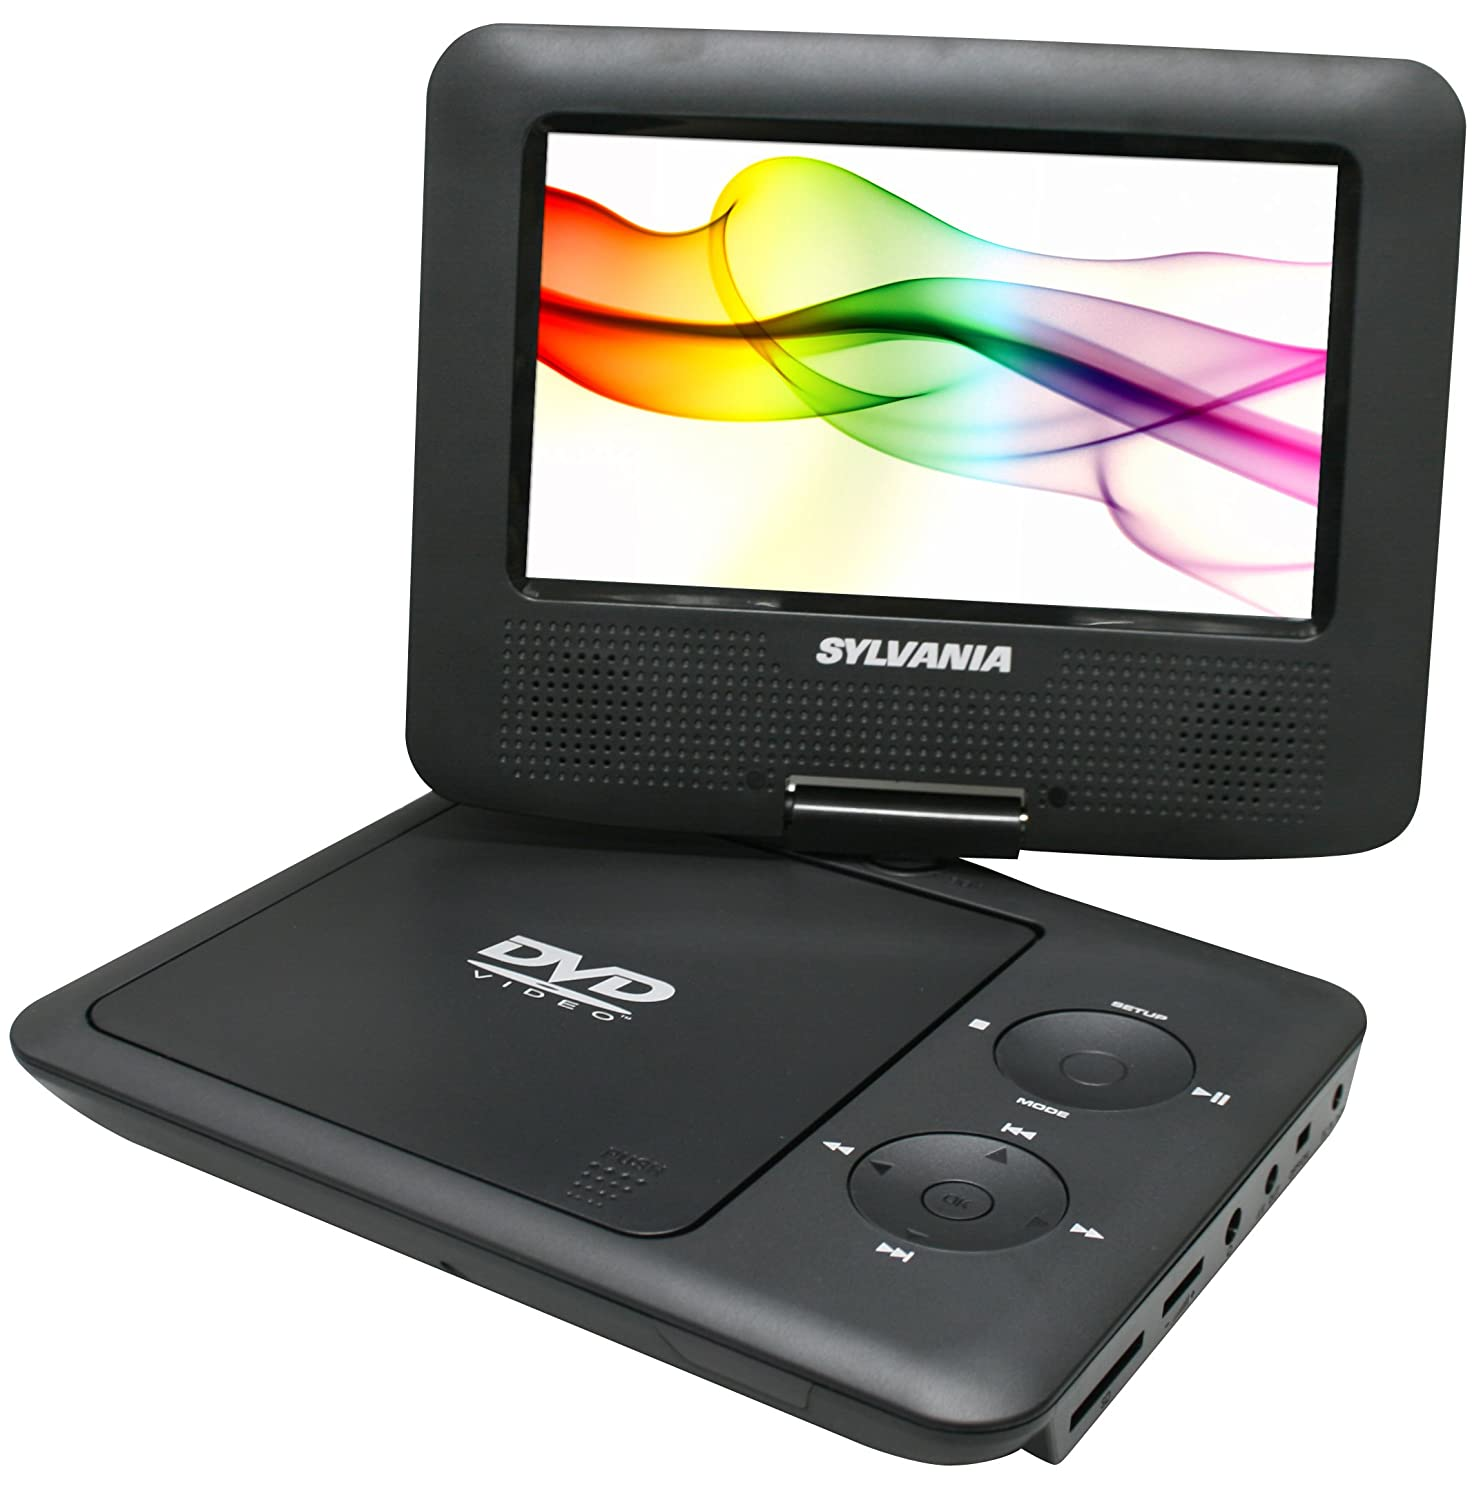 sylvania 7 inch portable dvd player with swivel screen car bag black color ebay. Black Bedroom Furniture Sets. Home Design Ideas